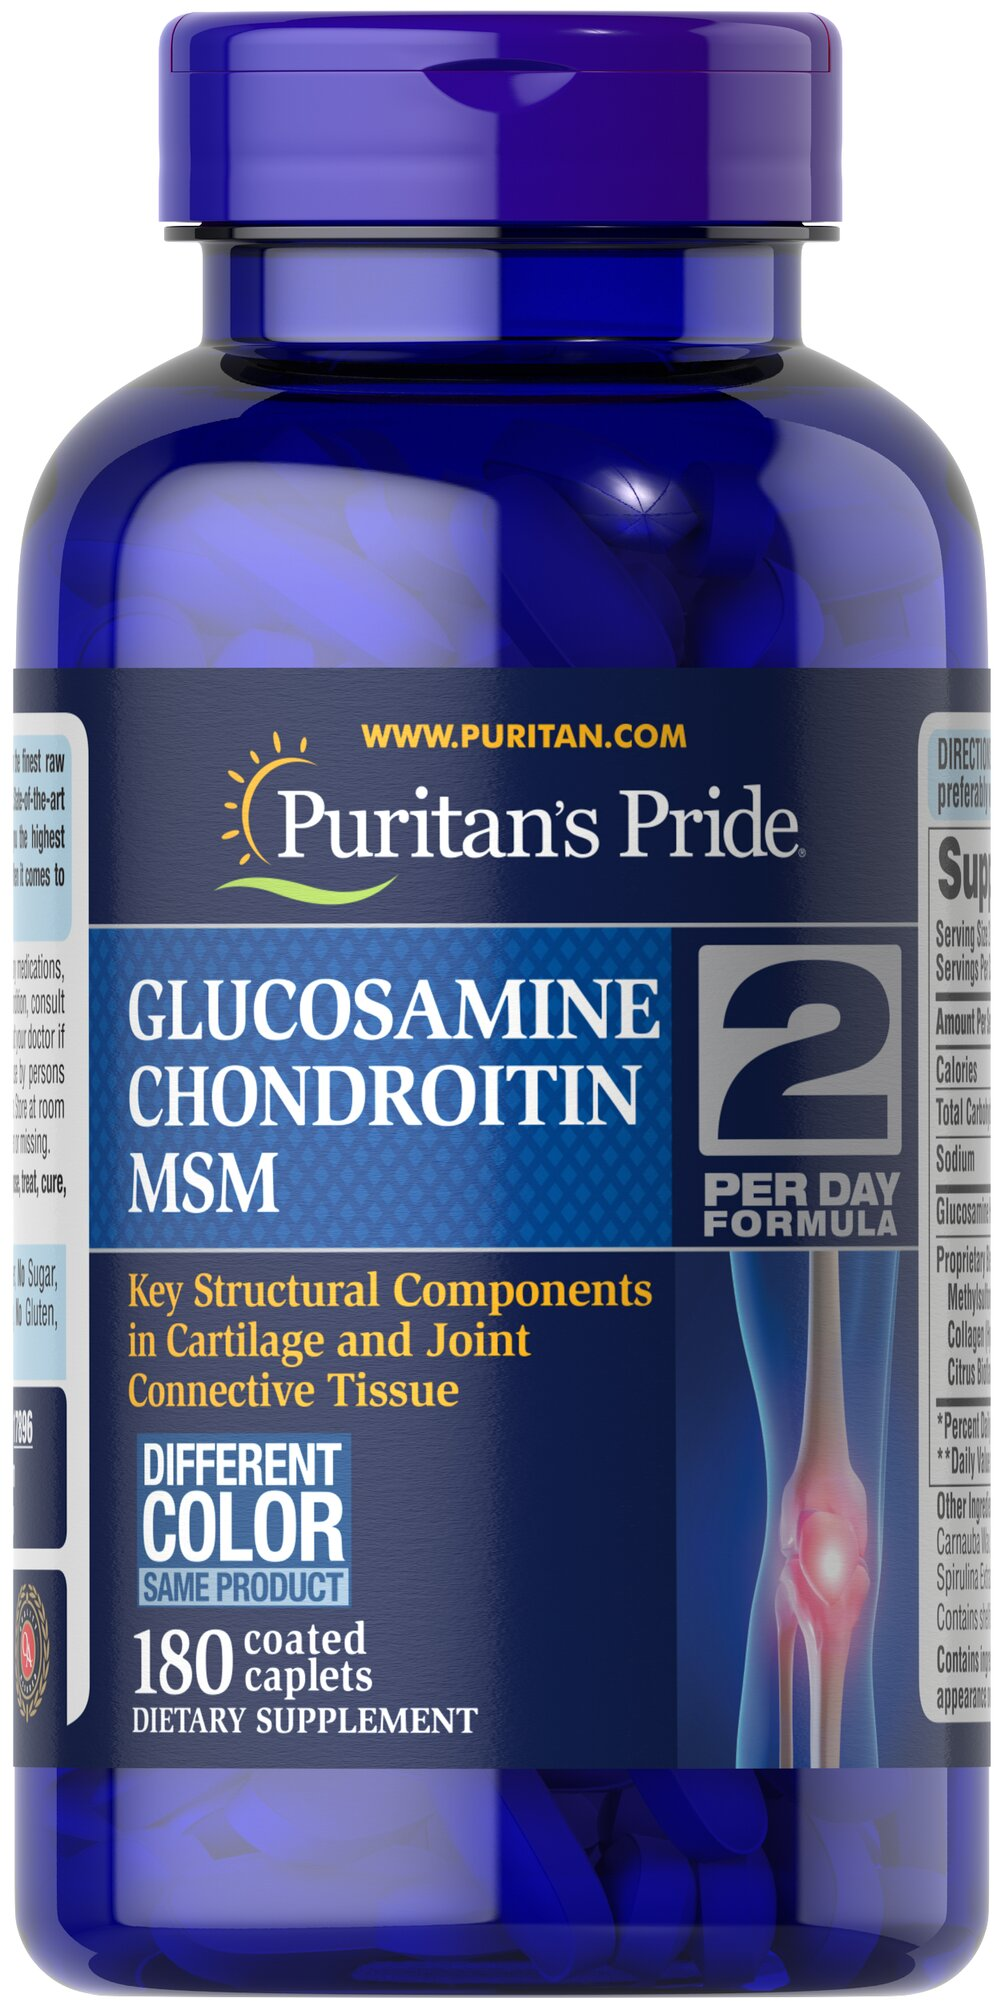 Triple Strength Glucosamine, Chondroitin & MSM Joint Soother® <p>Lubricates joints to improve flexibility**</p><p>Supports connective tissue in and around the joints**</p><p>Triple Strength Glucosamine, Chondroitin and MSM is the most powerful joint soother yet!** Just two caplets per day will give you triple strength protection with 1500 mg of Glucosamine, and 1700 mg of our joint nourishing proprietary blend.**</p> 180 Caplets  $49.99